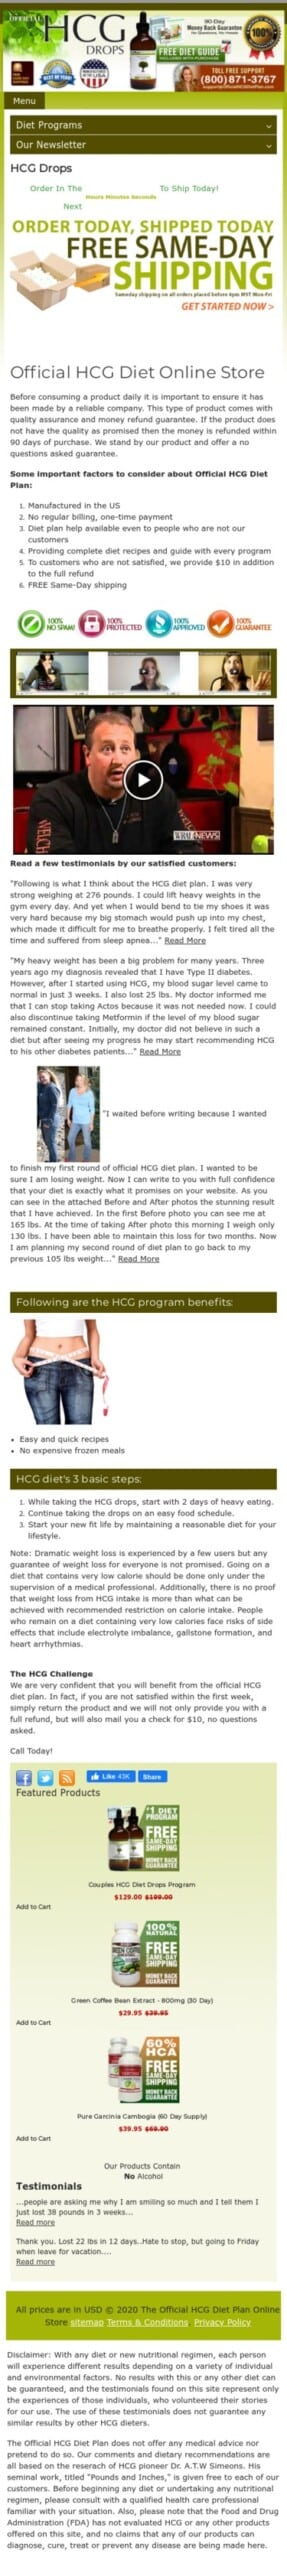 official hcg diet plan Coupon